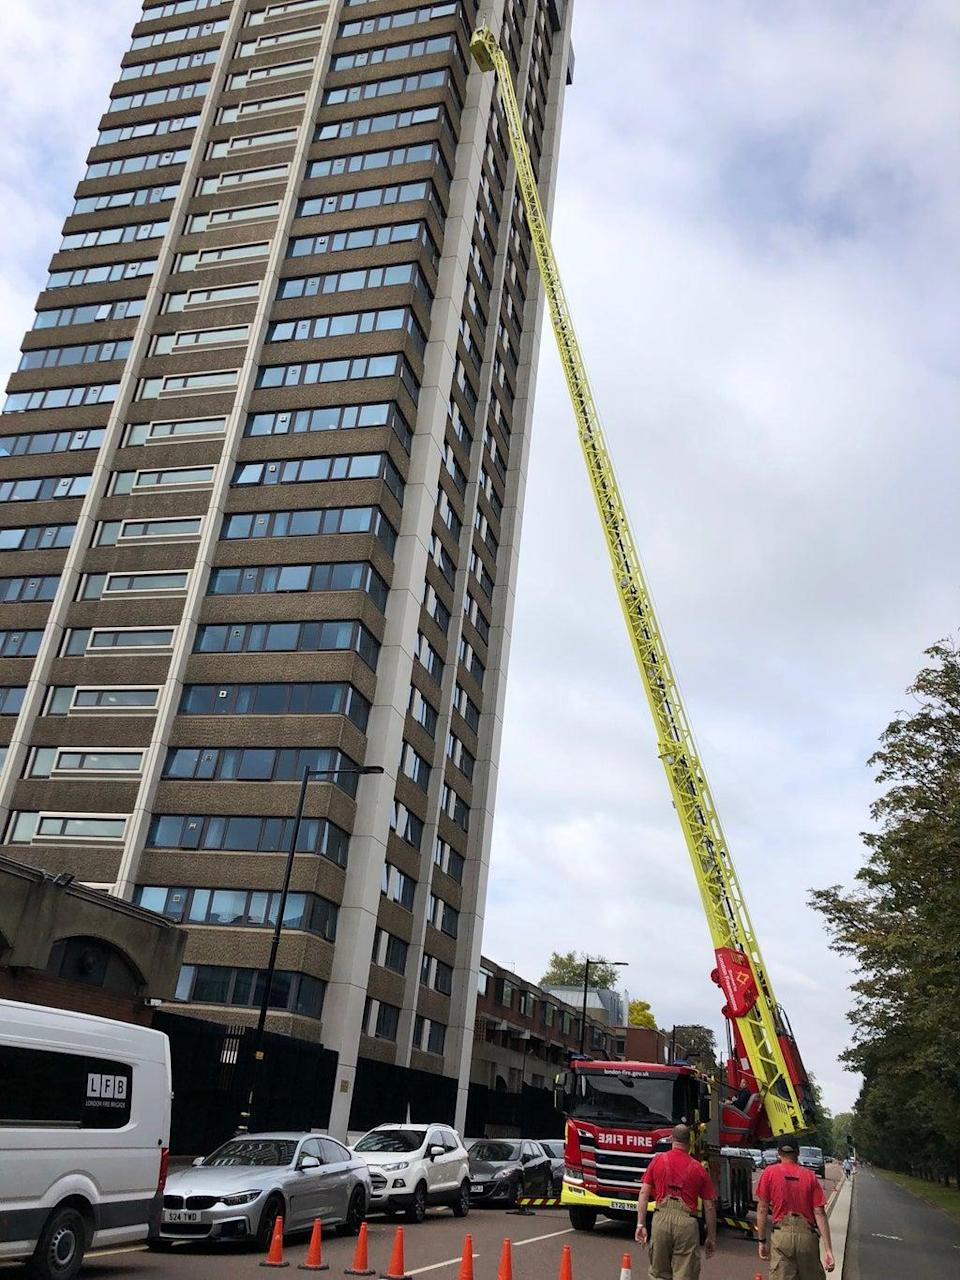 Blowing in the wind: firefighters say the top of the ladder moves in the wind (Ross Lydall)